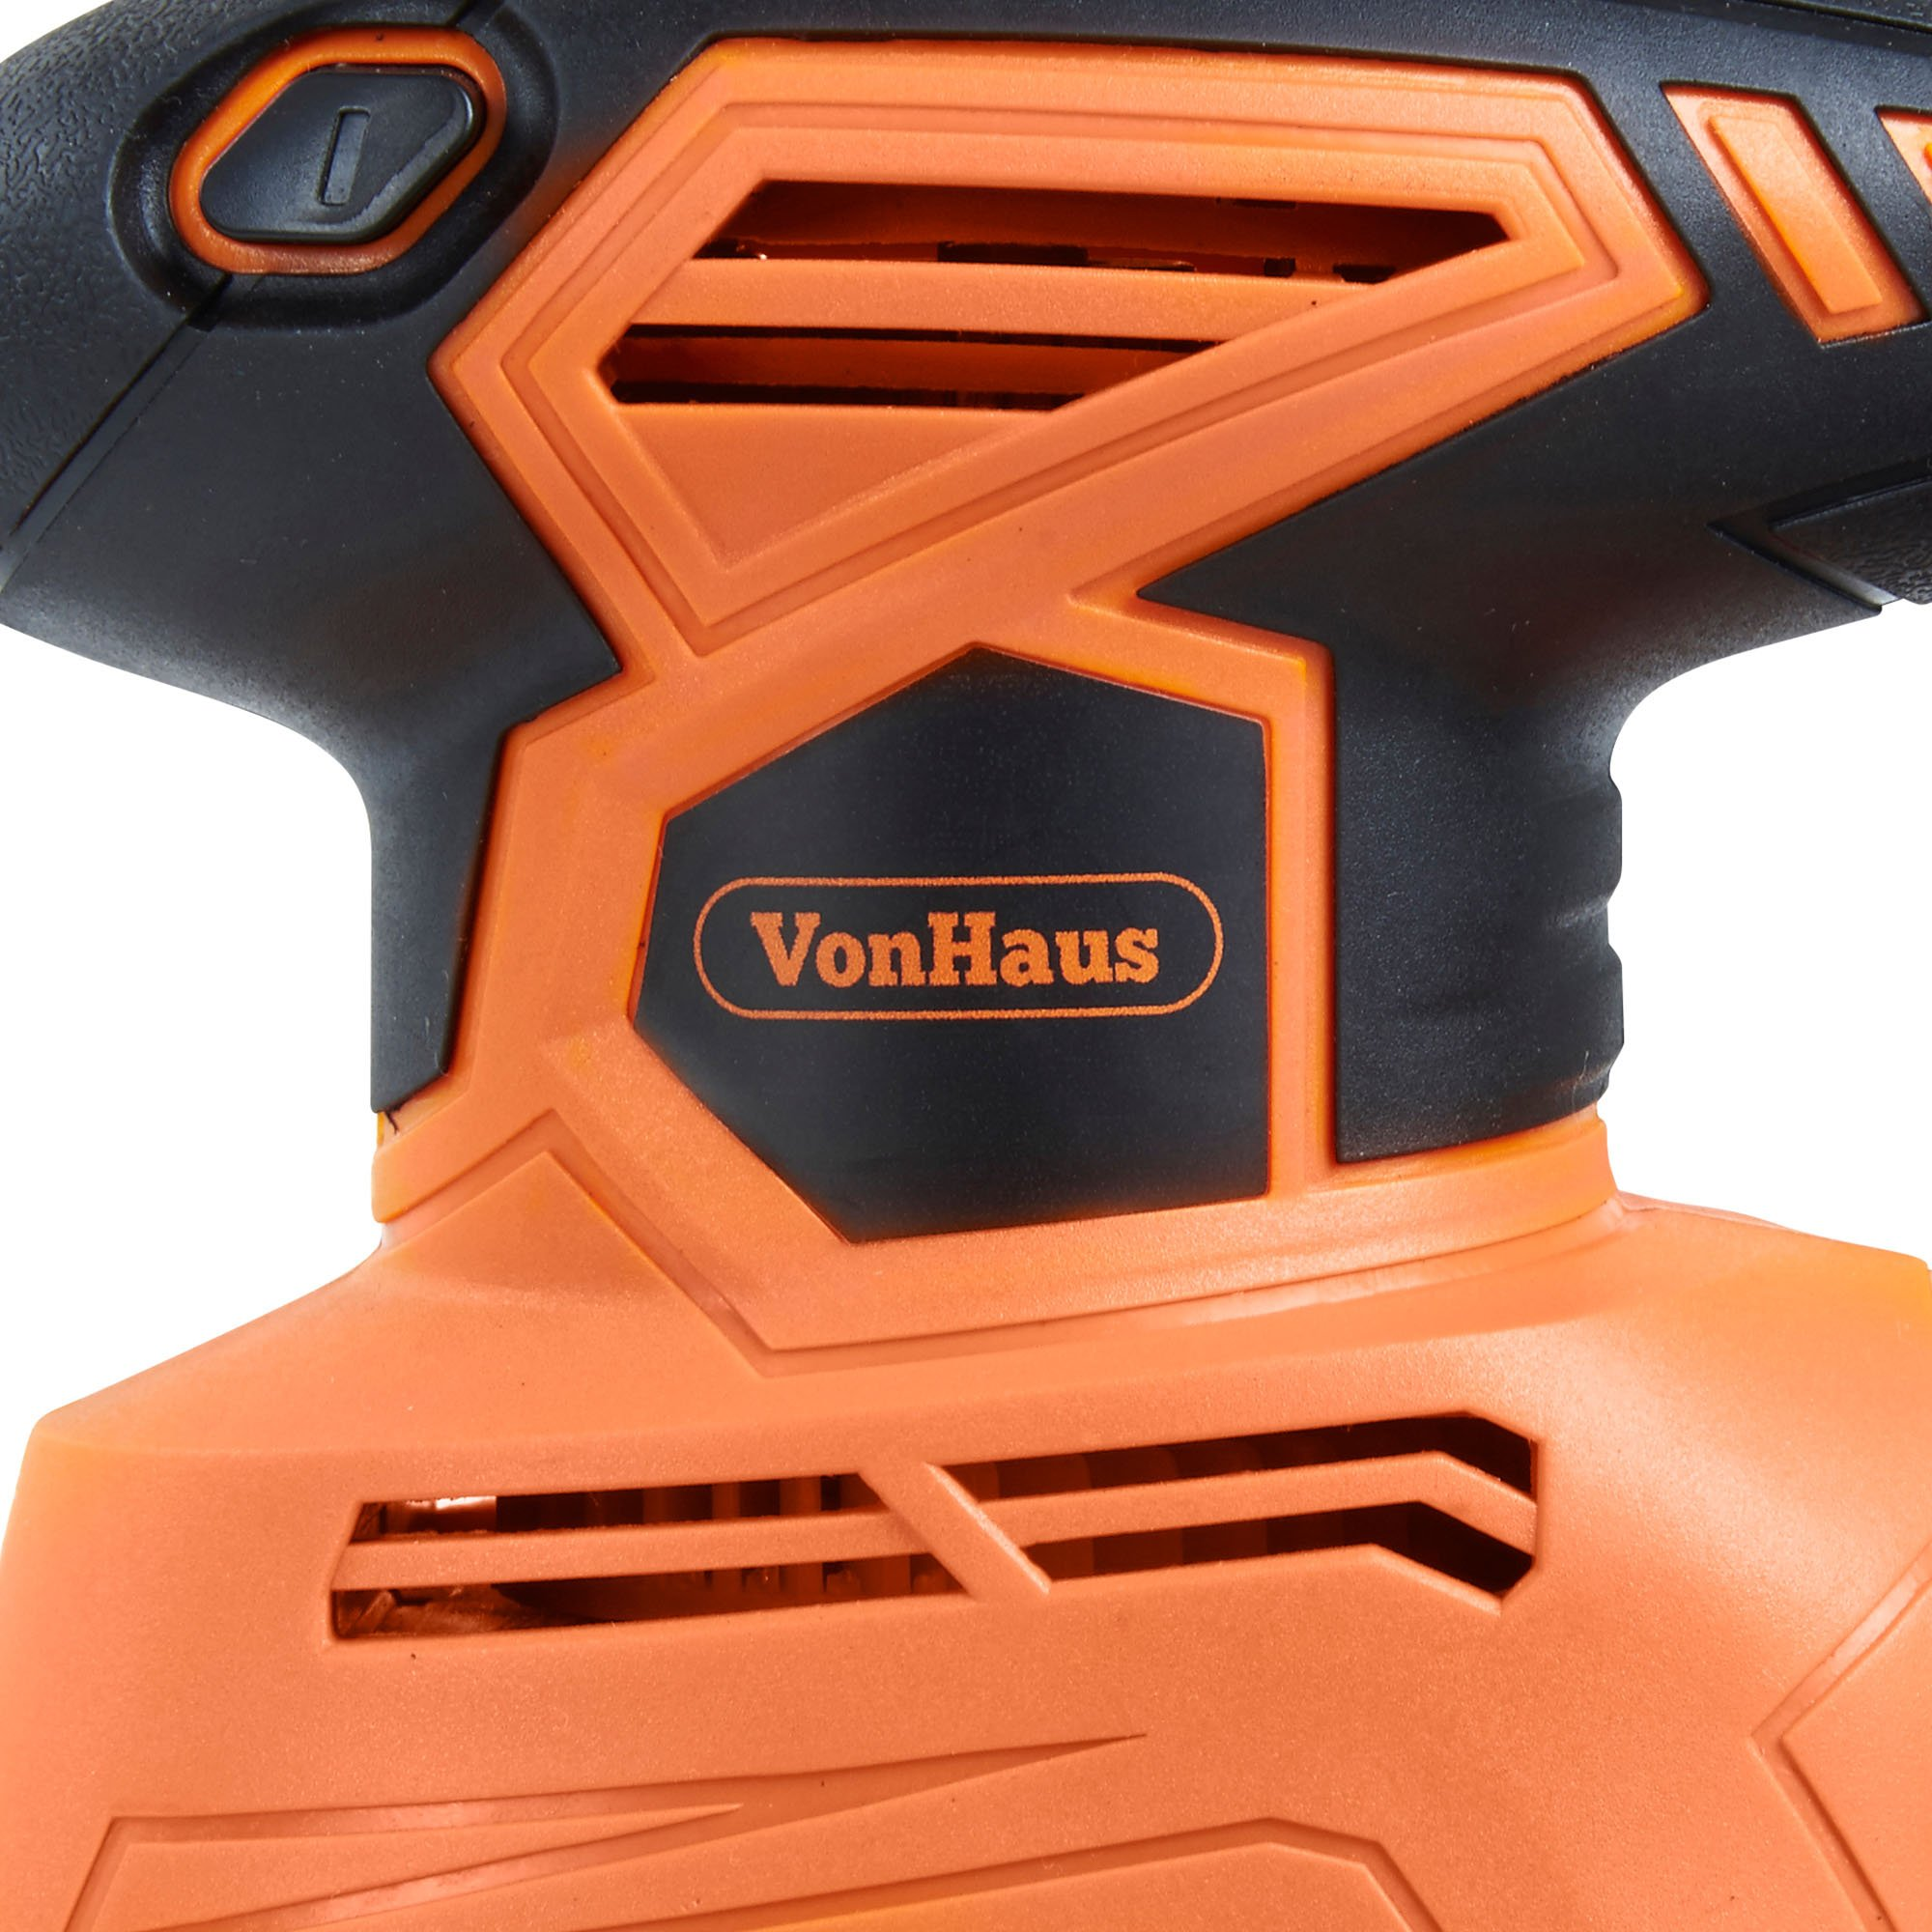 VonHaus 1.1A 2 in 1 Sheet & Detail Sander - 14000 RPM with 6 Sanding Sheets Included - Multi-Use, Compact Lightweight Design with Dust Extraction System and 6ft Power Cord by VonHaus (Image #9)